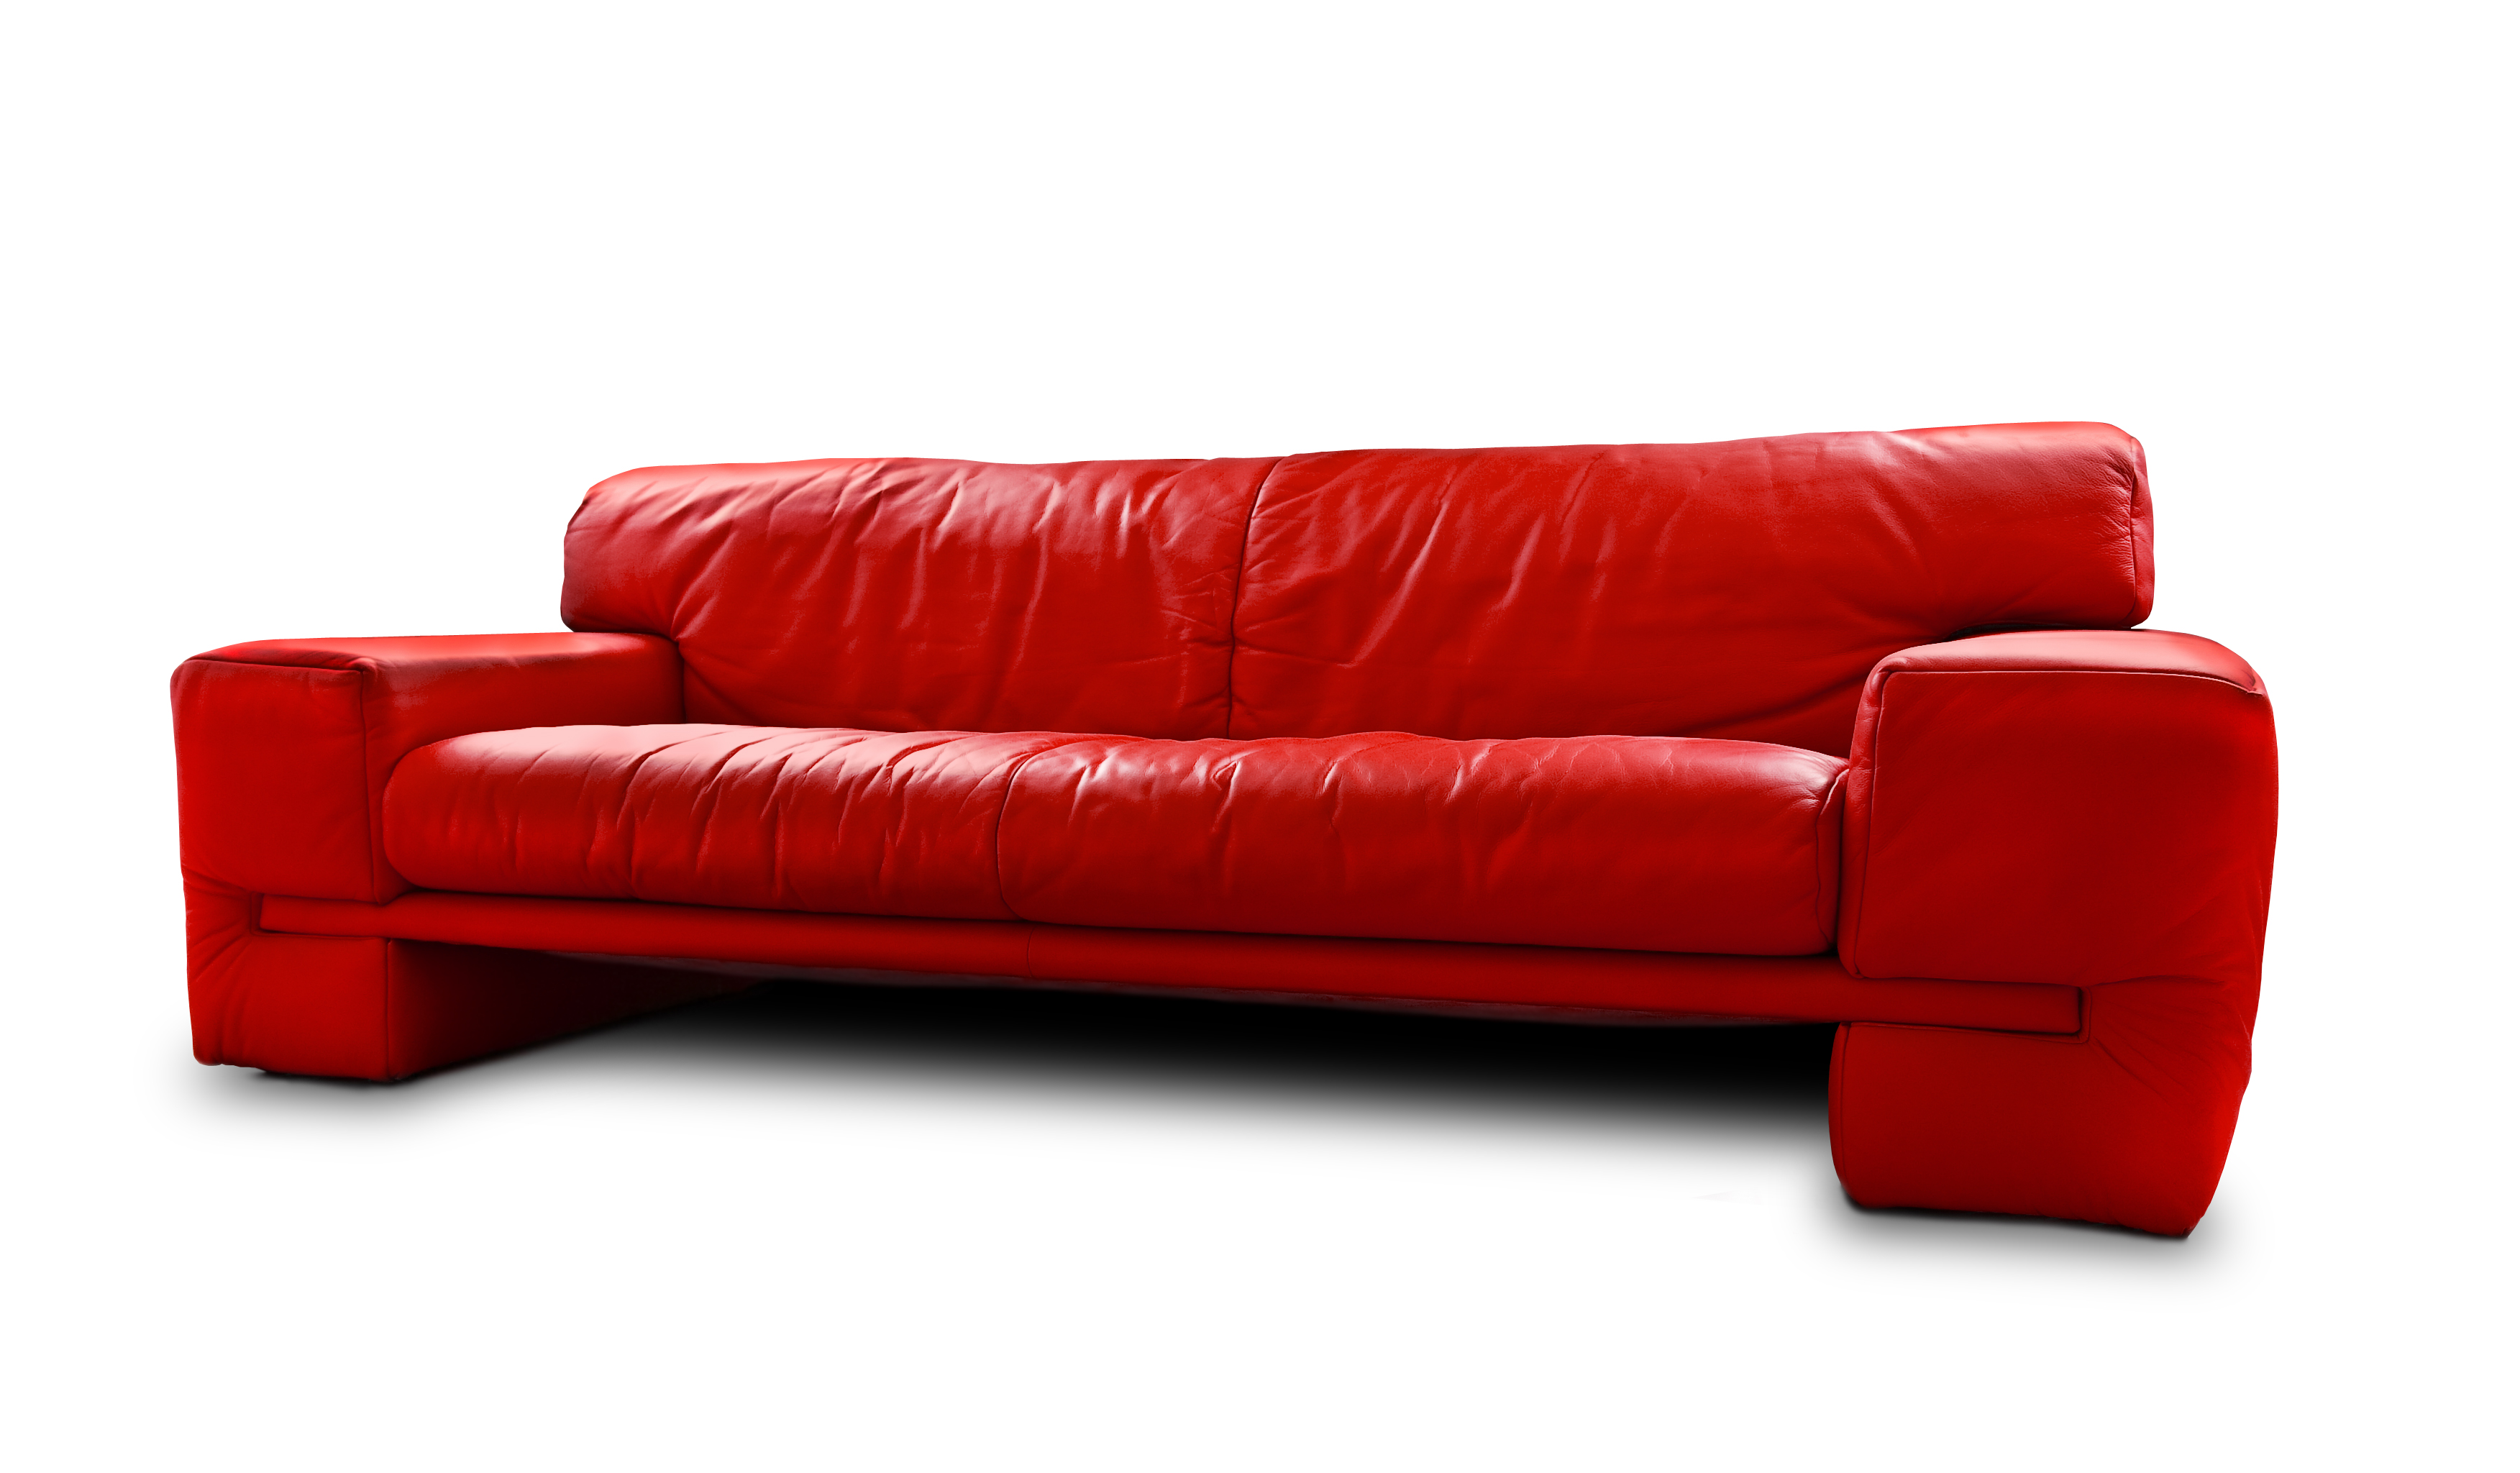 cheap couches on Tips For Getting Used Furniture Cheap   Saycampuslife  Campus News